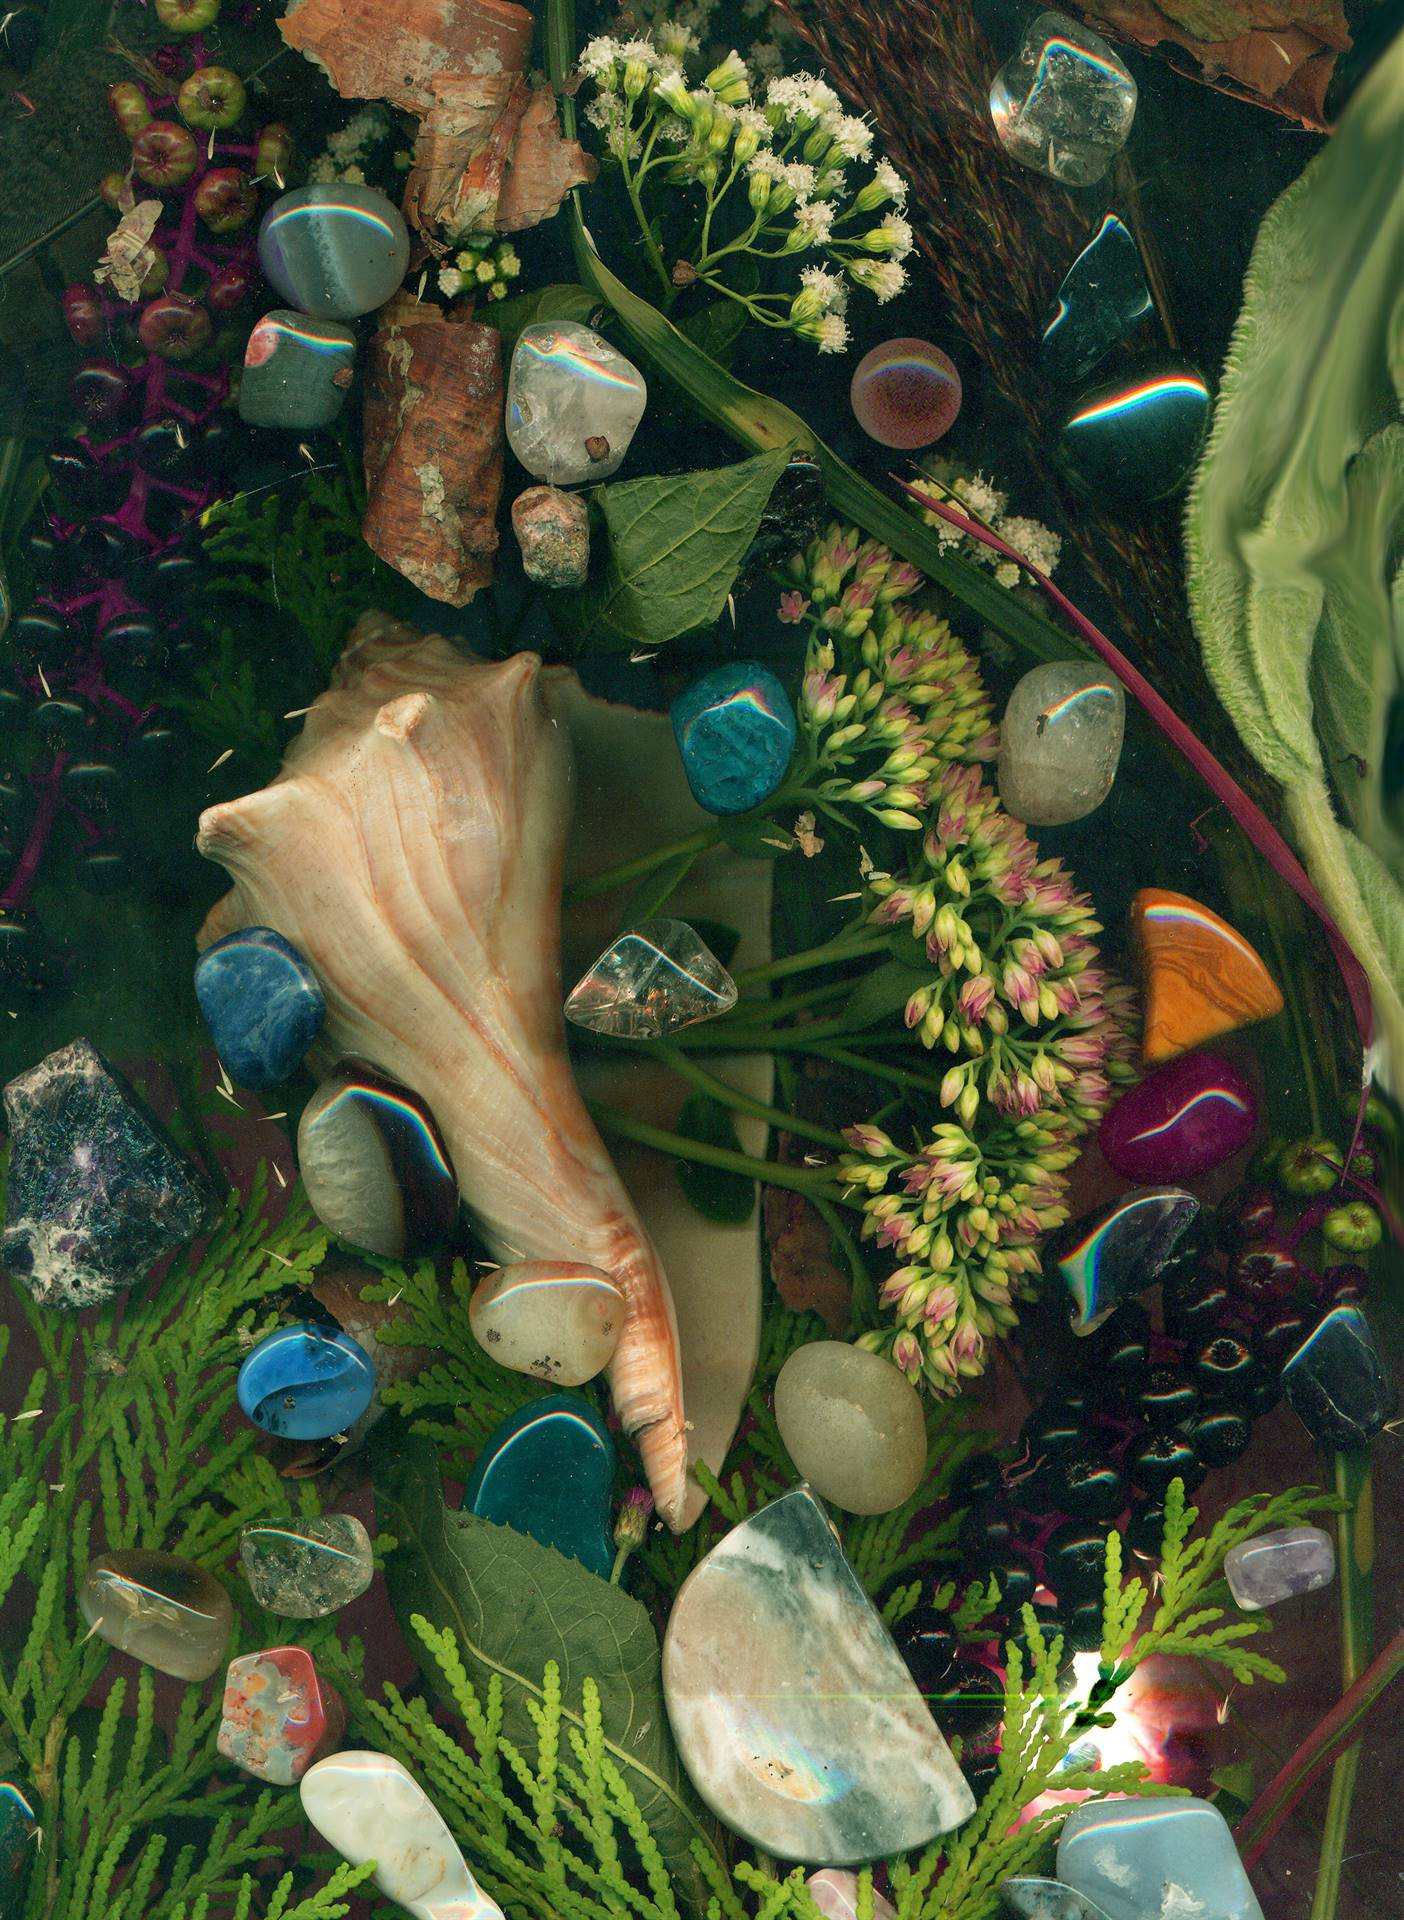 Artwork of shells, flowers, polished rocks, and natural green plants.